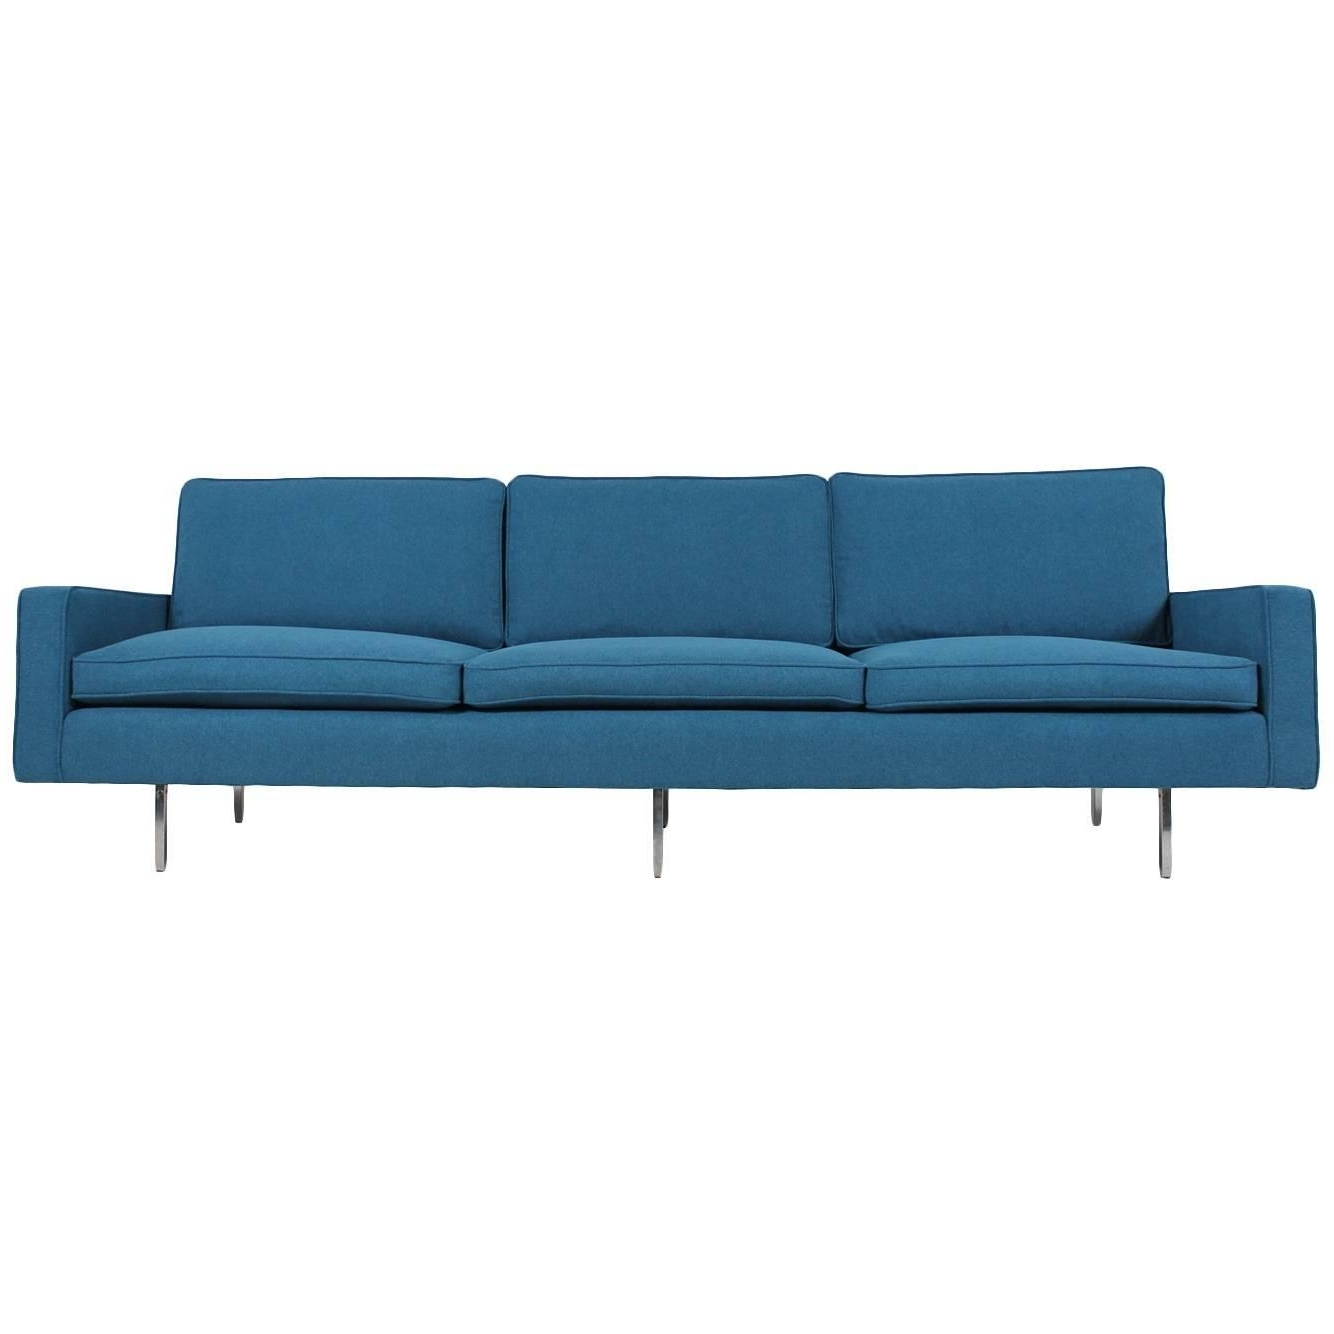 Current Florence Sofas Regarding Florence Knoll Sofas – 61 For Sale At 1Stdibs (View 2 of 15)